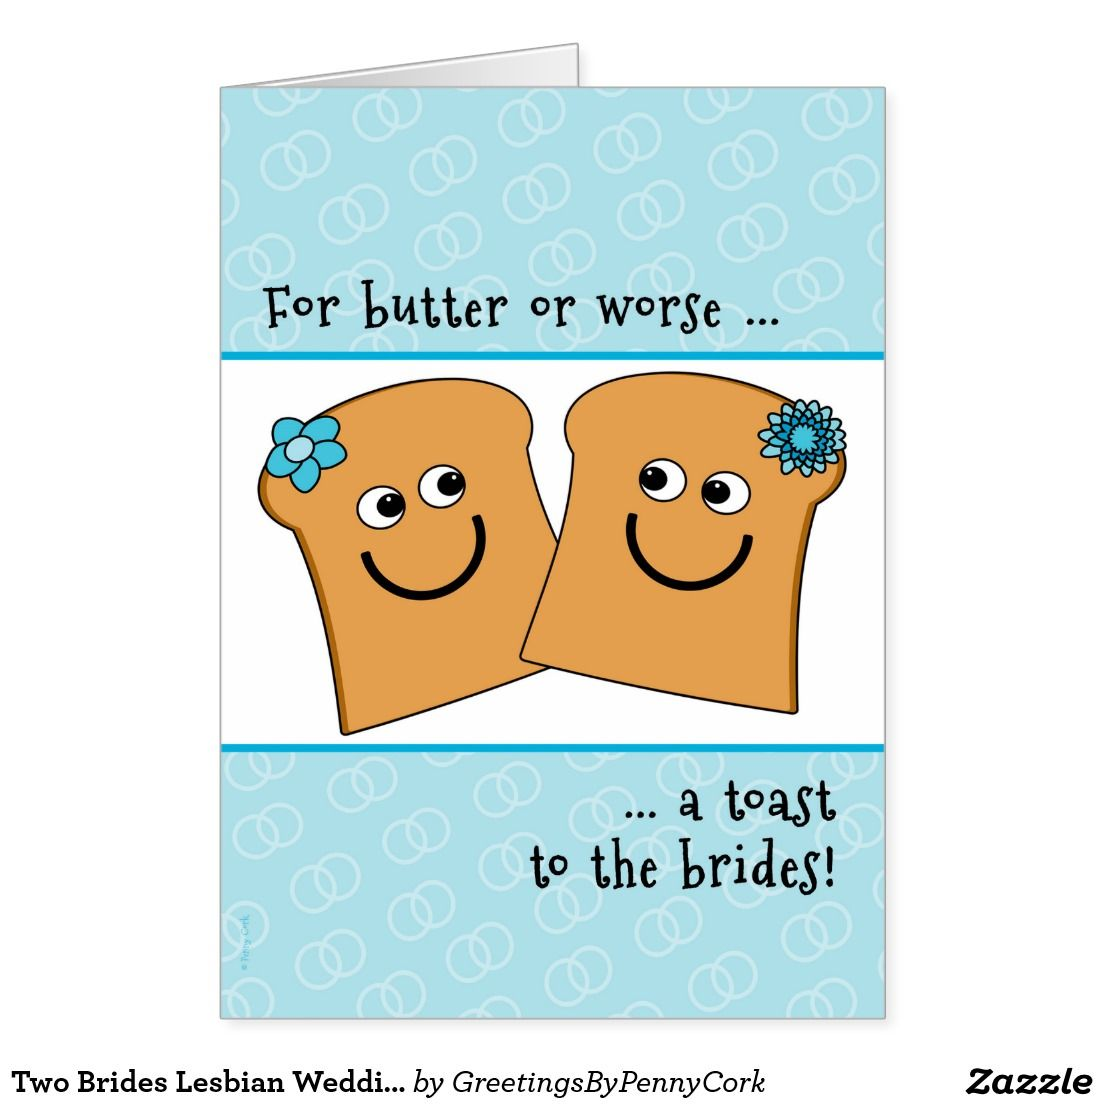 Two Brides Lesbian Wedding Congrats Funny Toast Card Romantic Cards